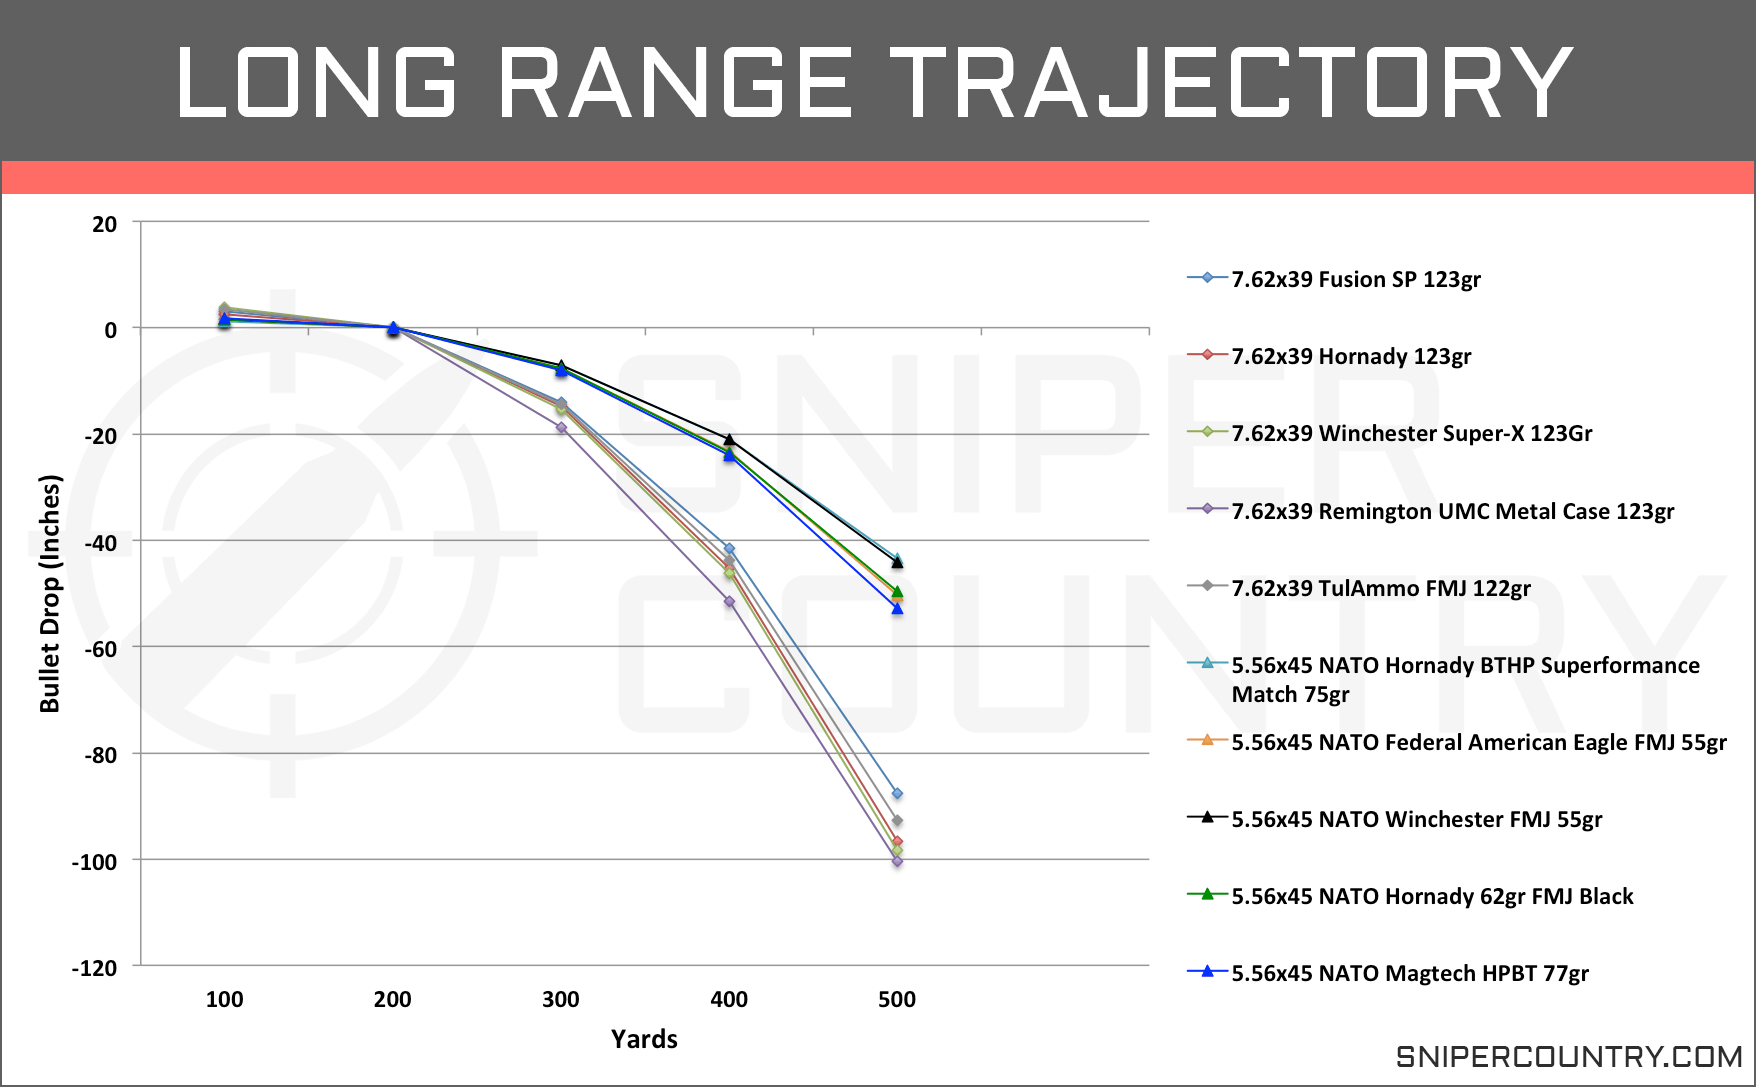 Long Range Trajectory 5.56×45 vs 7.62×39